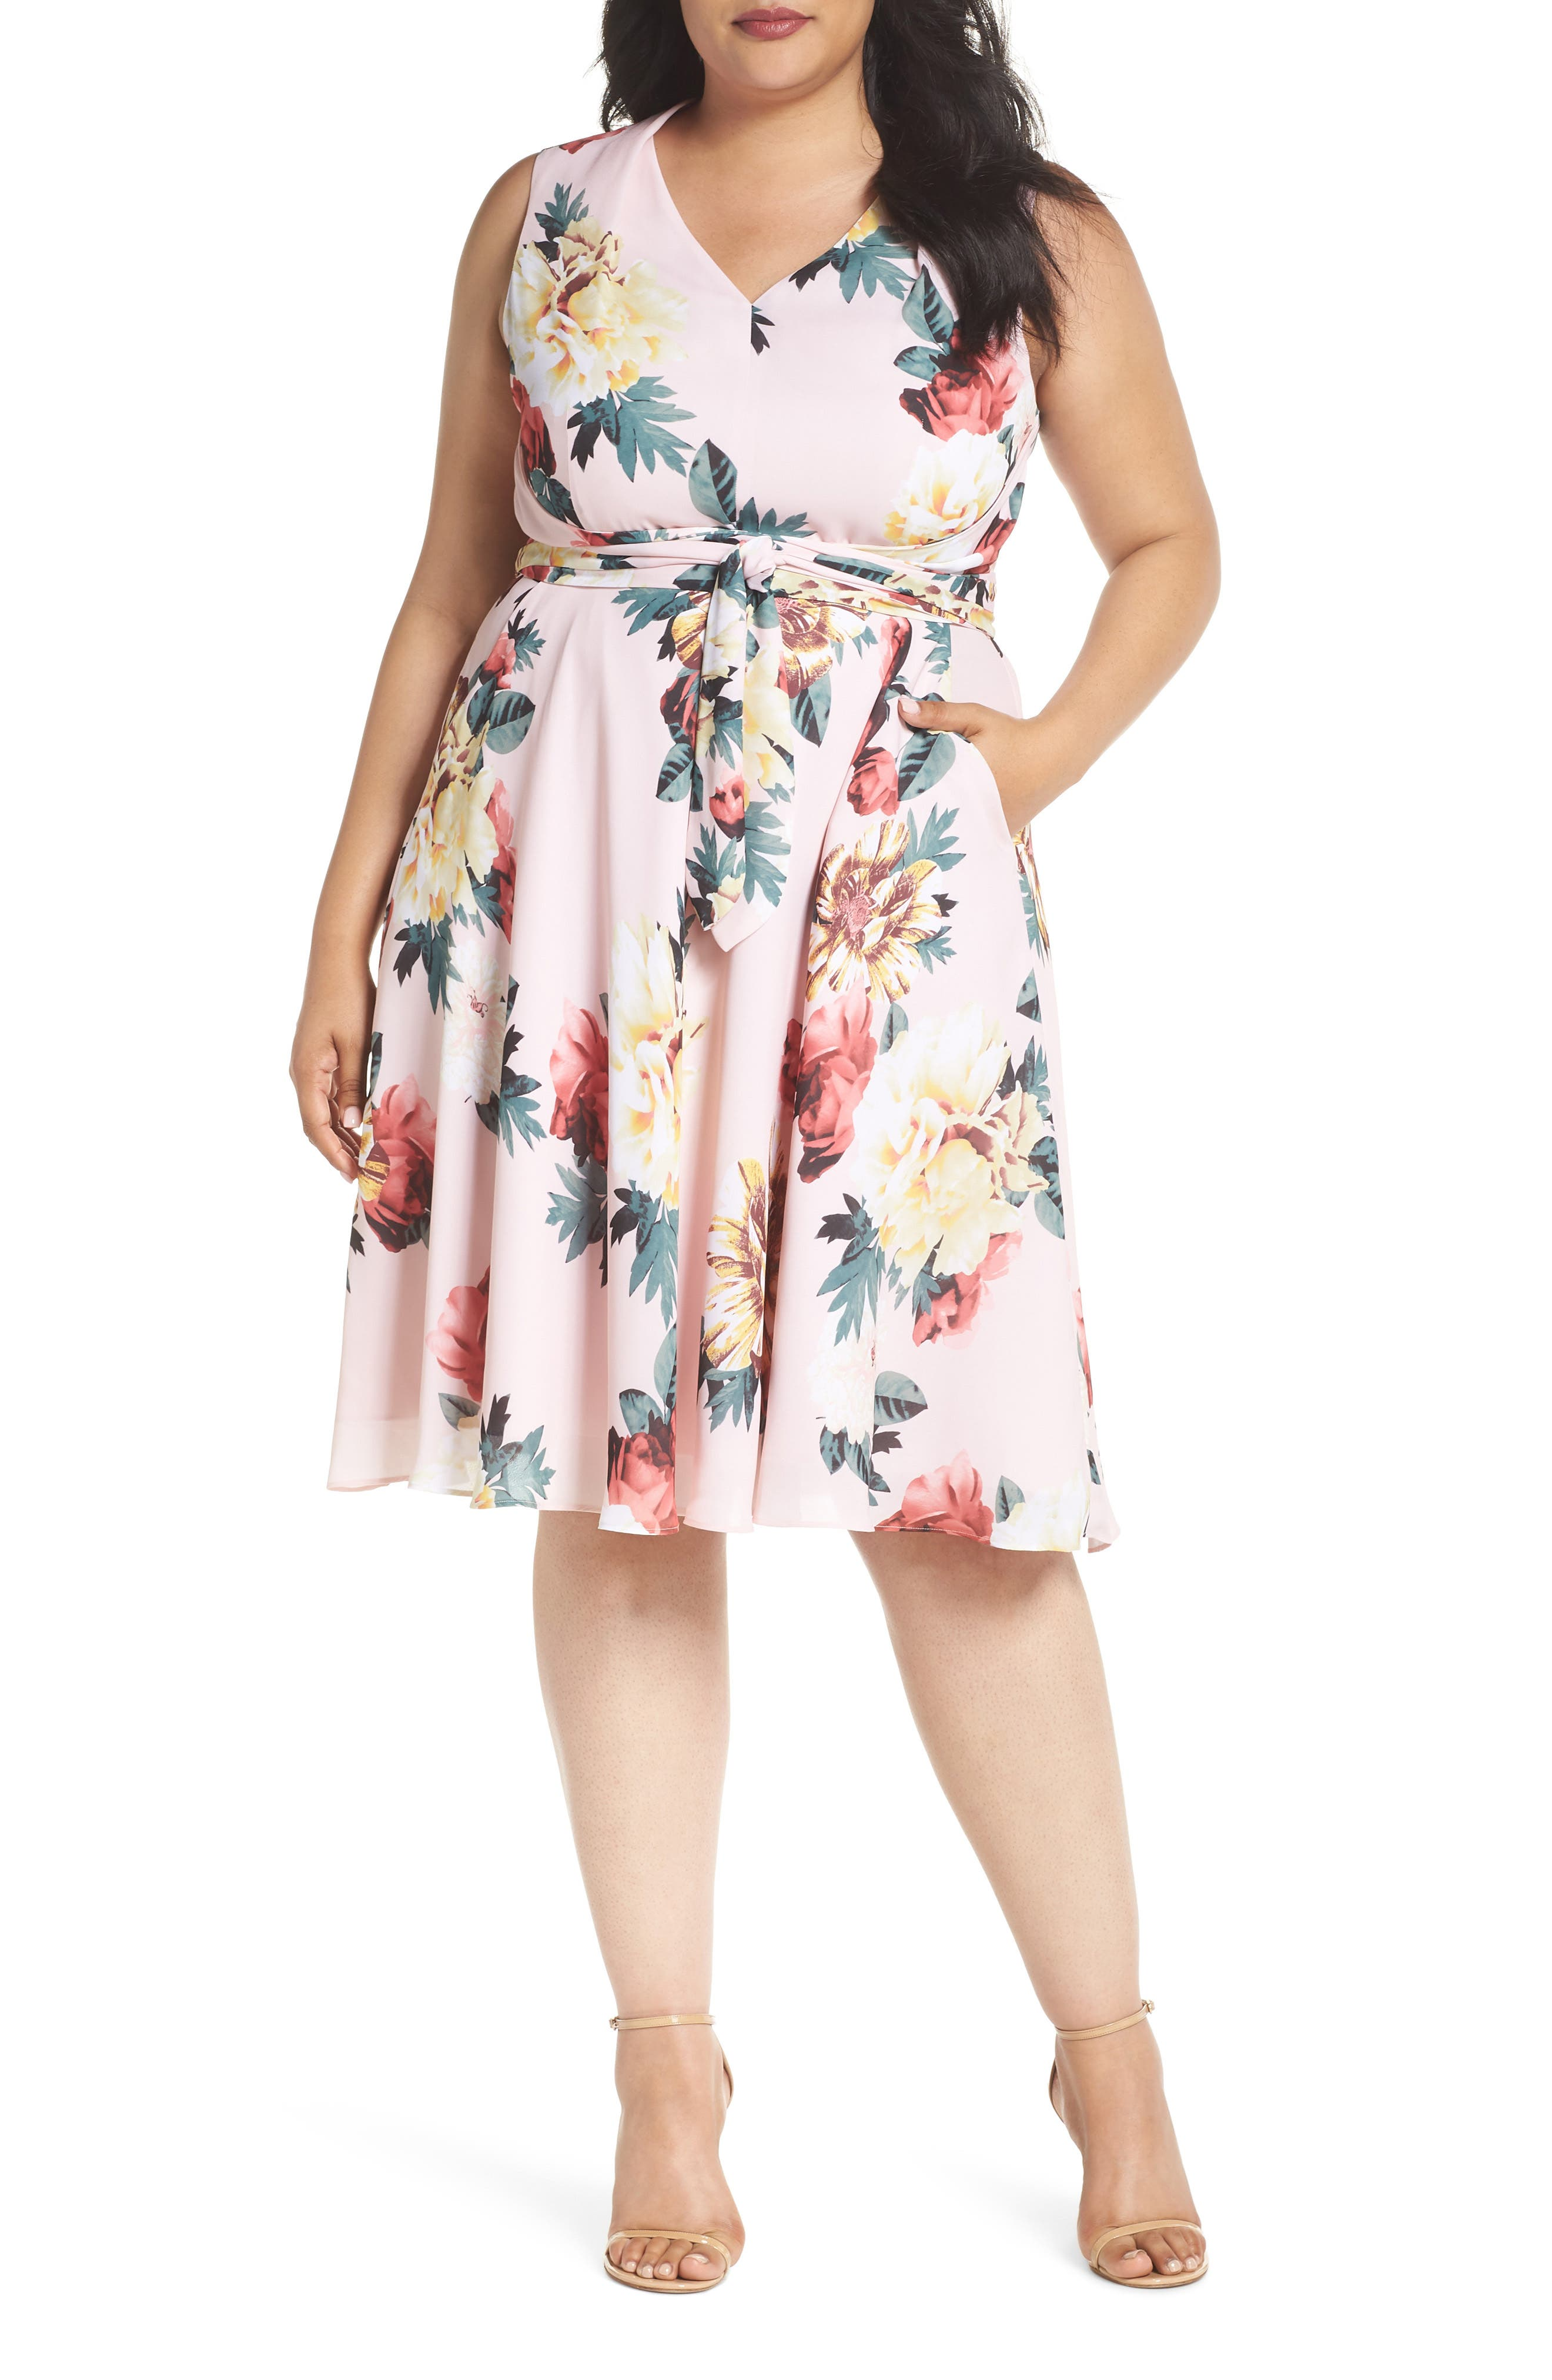 Floral Print Tie Waist Fit & Flare Dress,                         Main,                         color, Blush/ Lemon/ Coral